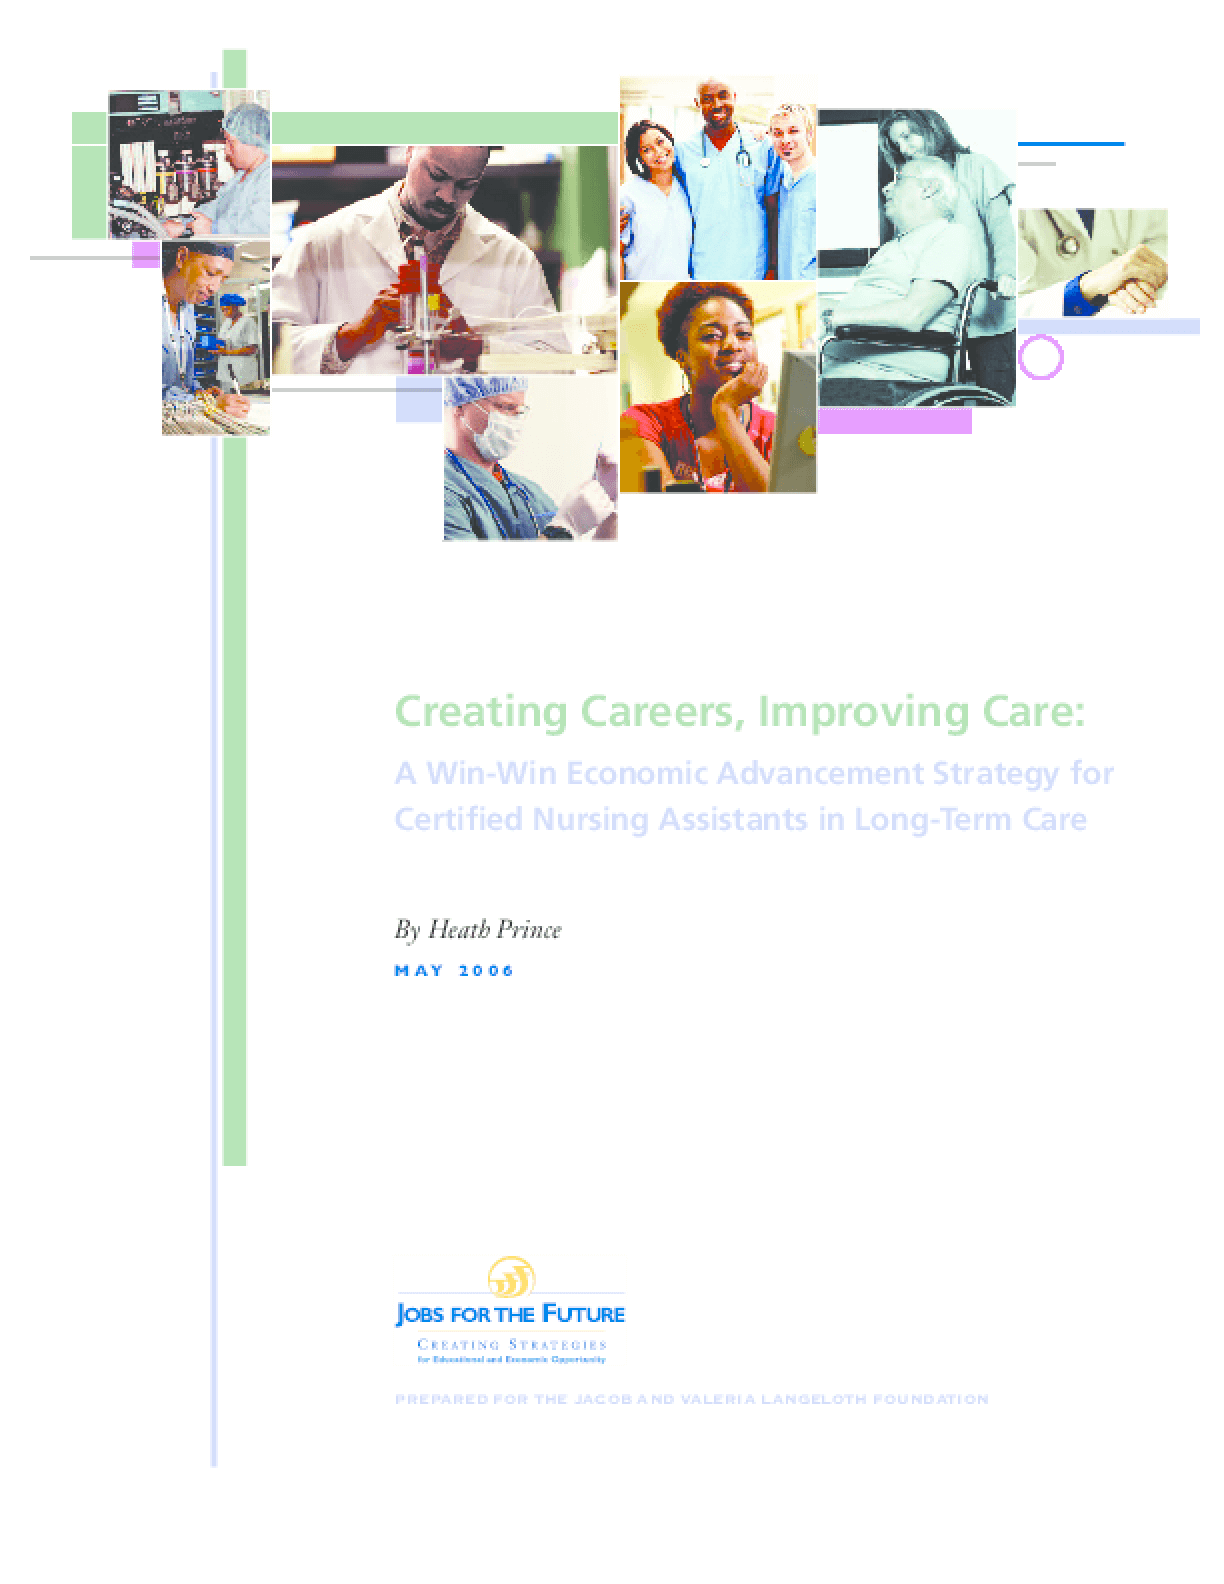 Creating Careers, Improving Care: A Win-Win Economic Advancement Strategy for Certified Nursing Assistants in Long-Term Care